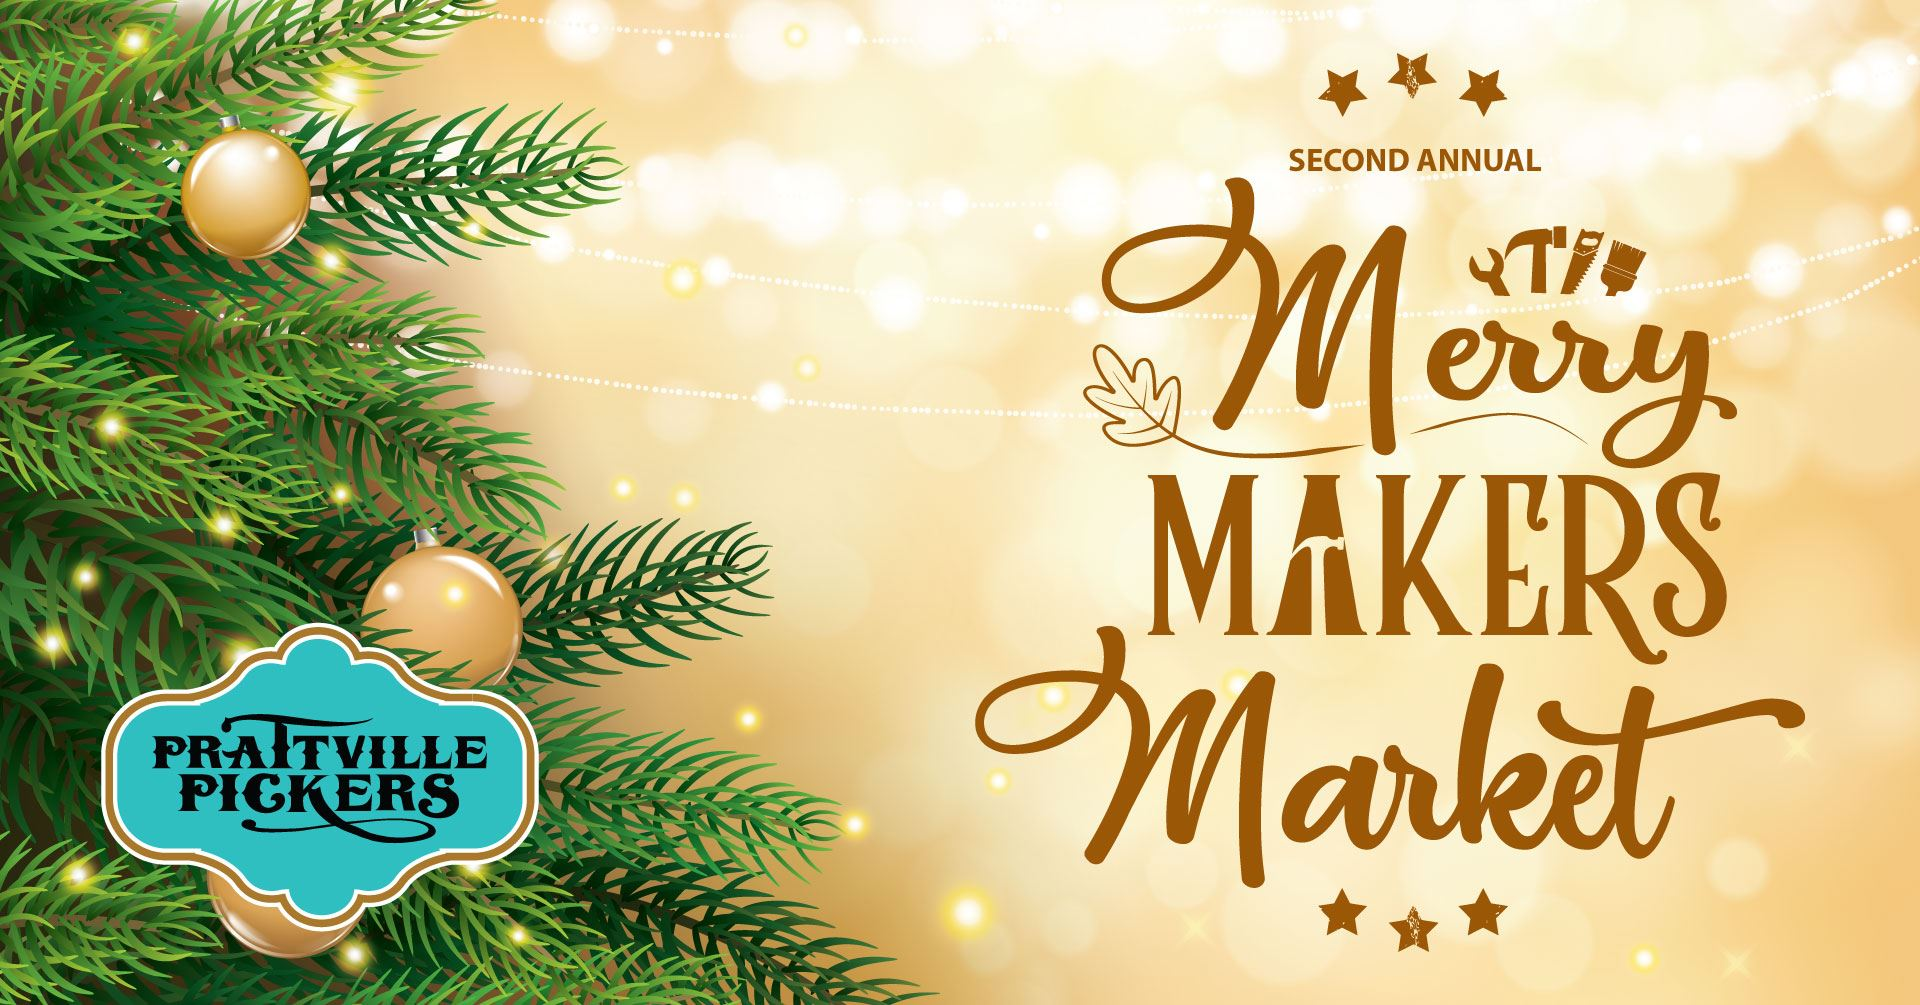 Prattville Christmas 2020 2nd Annual Merry Makers Market Holiday Event Coming to Prattville